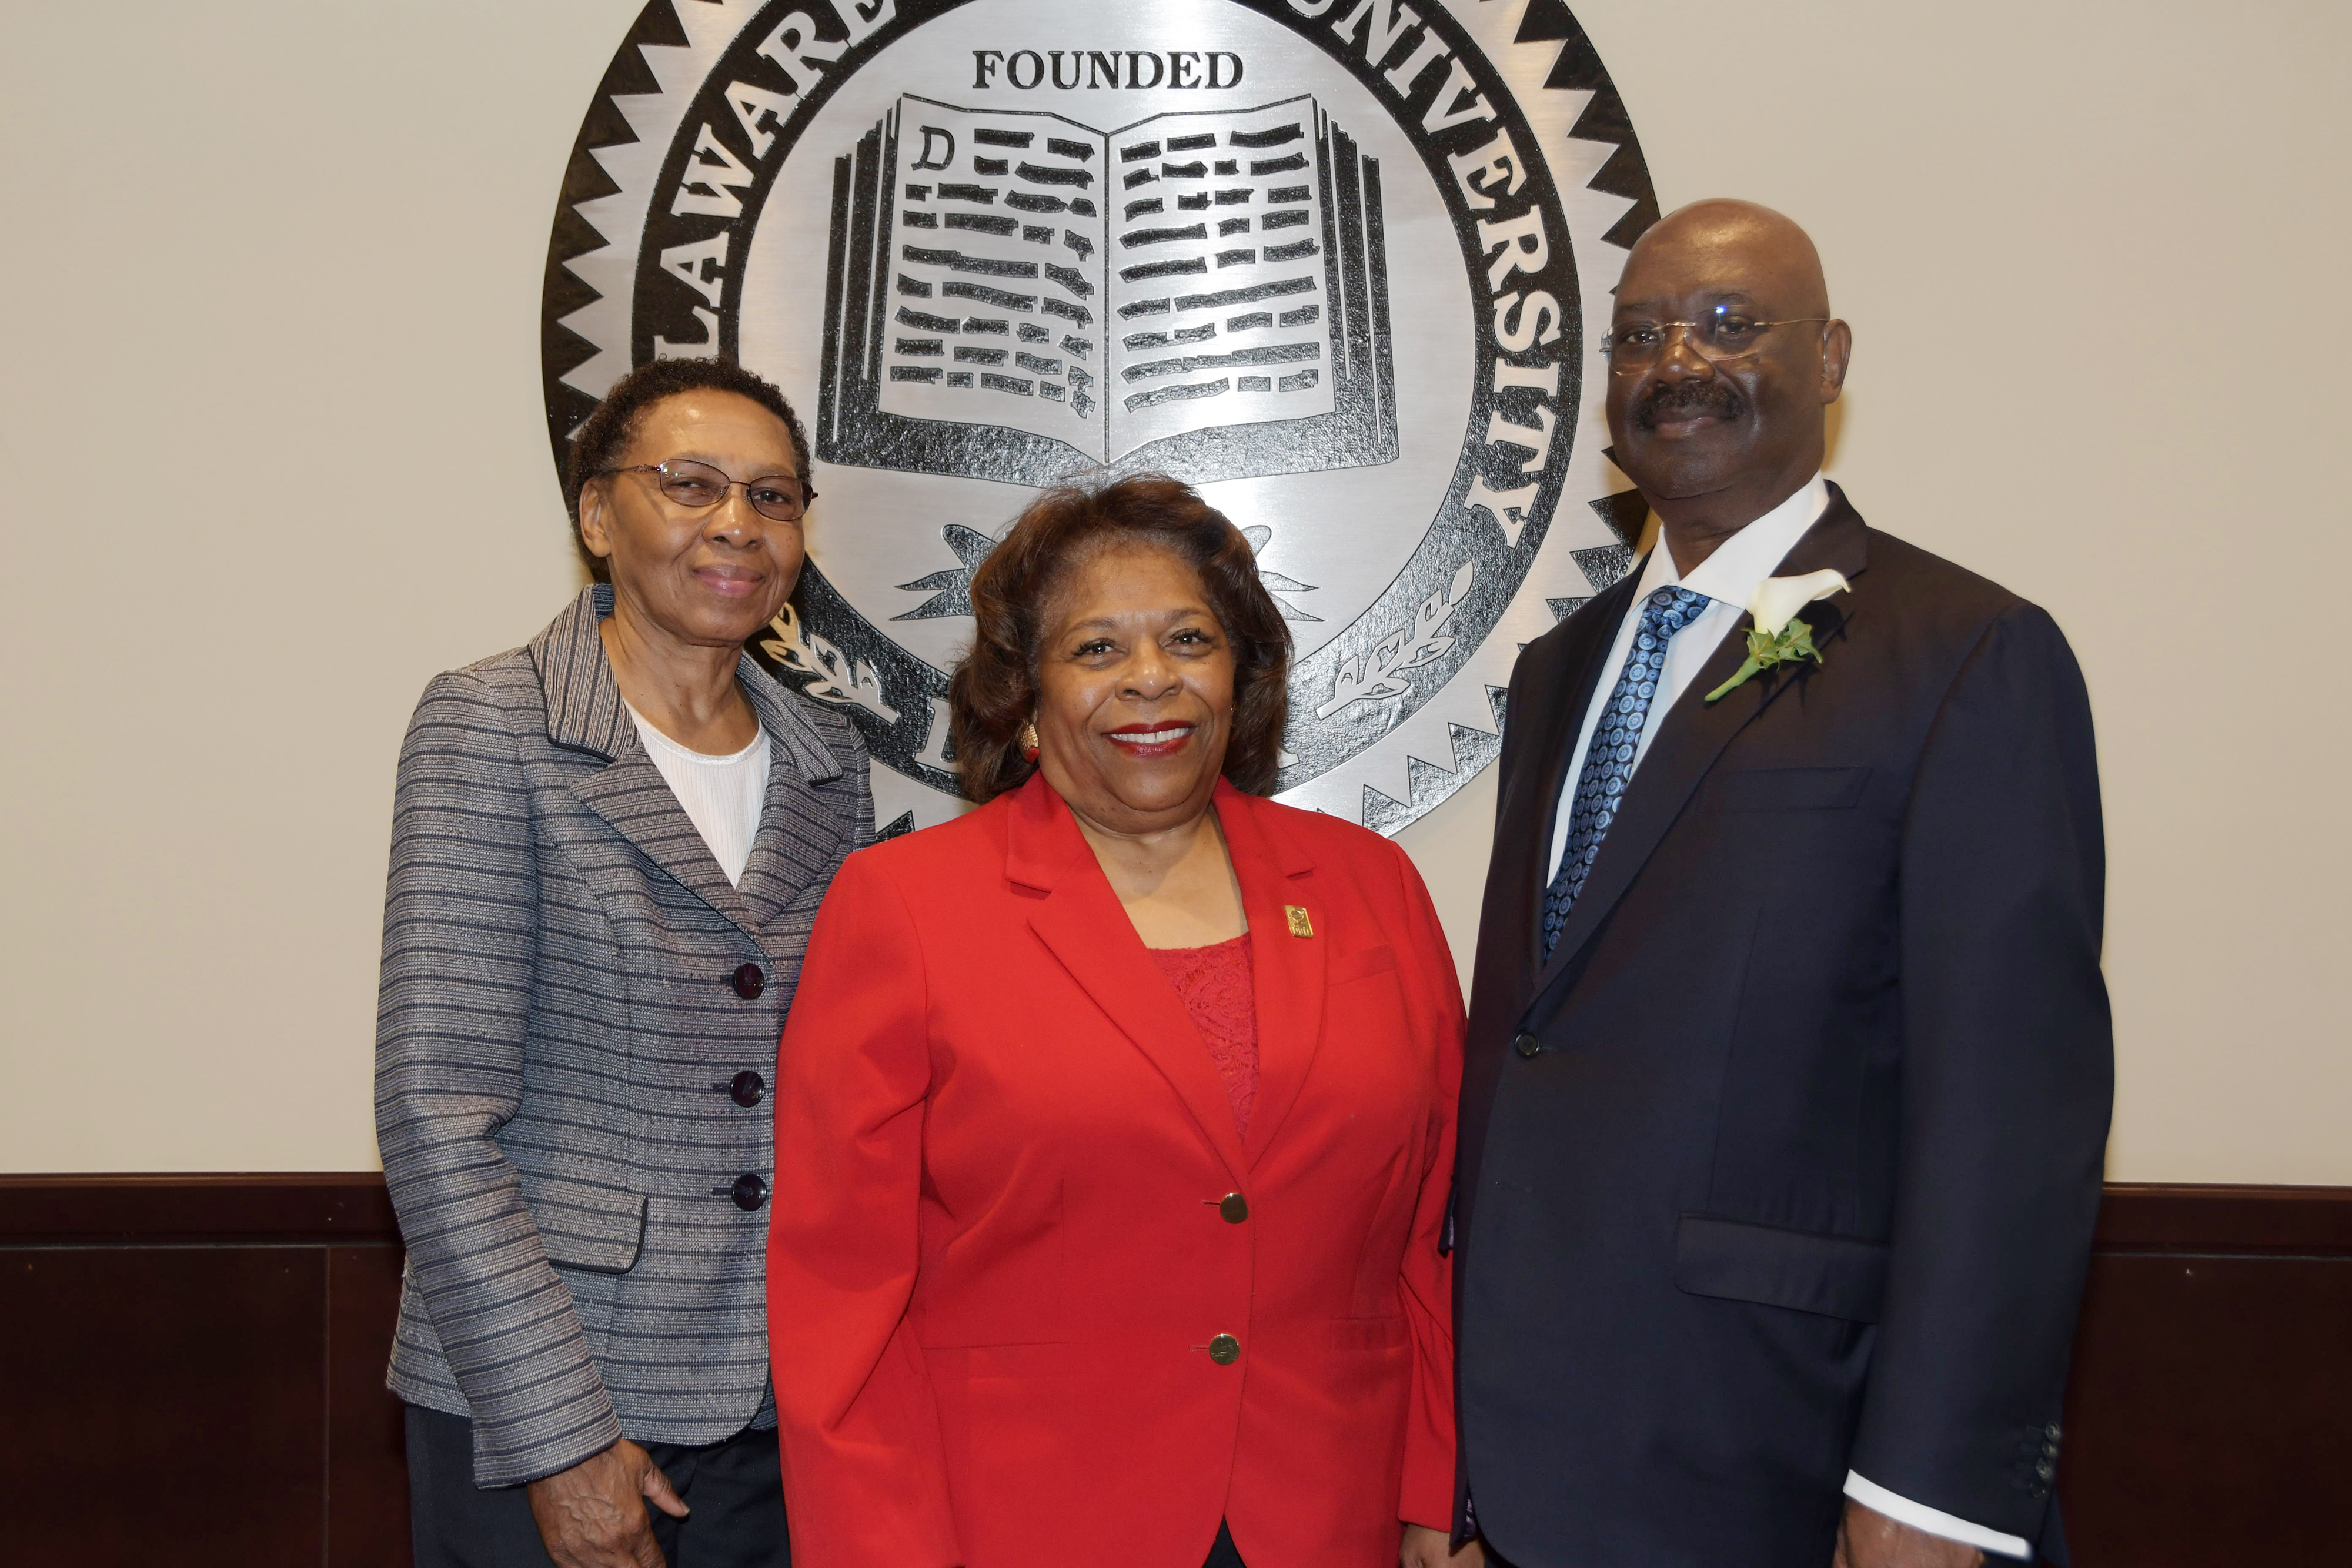 University President Wilma Mishoe poses with Shirley and Bennie Smith after the couple added an additional $20,000 to the scholarship endowment they established in 2017.